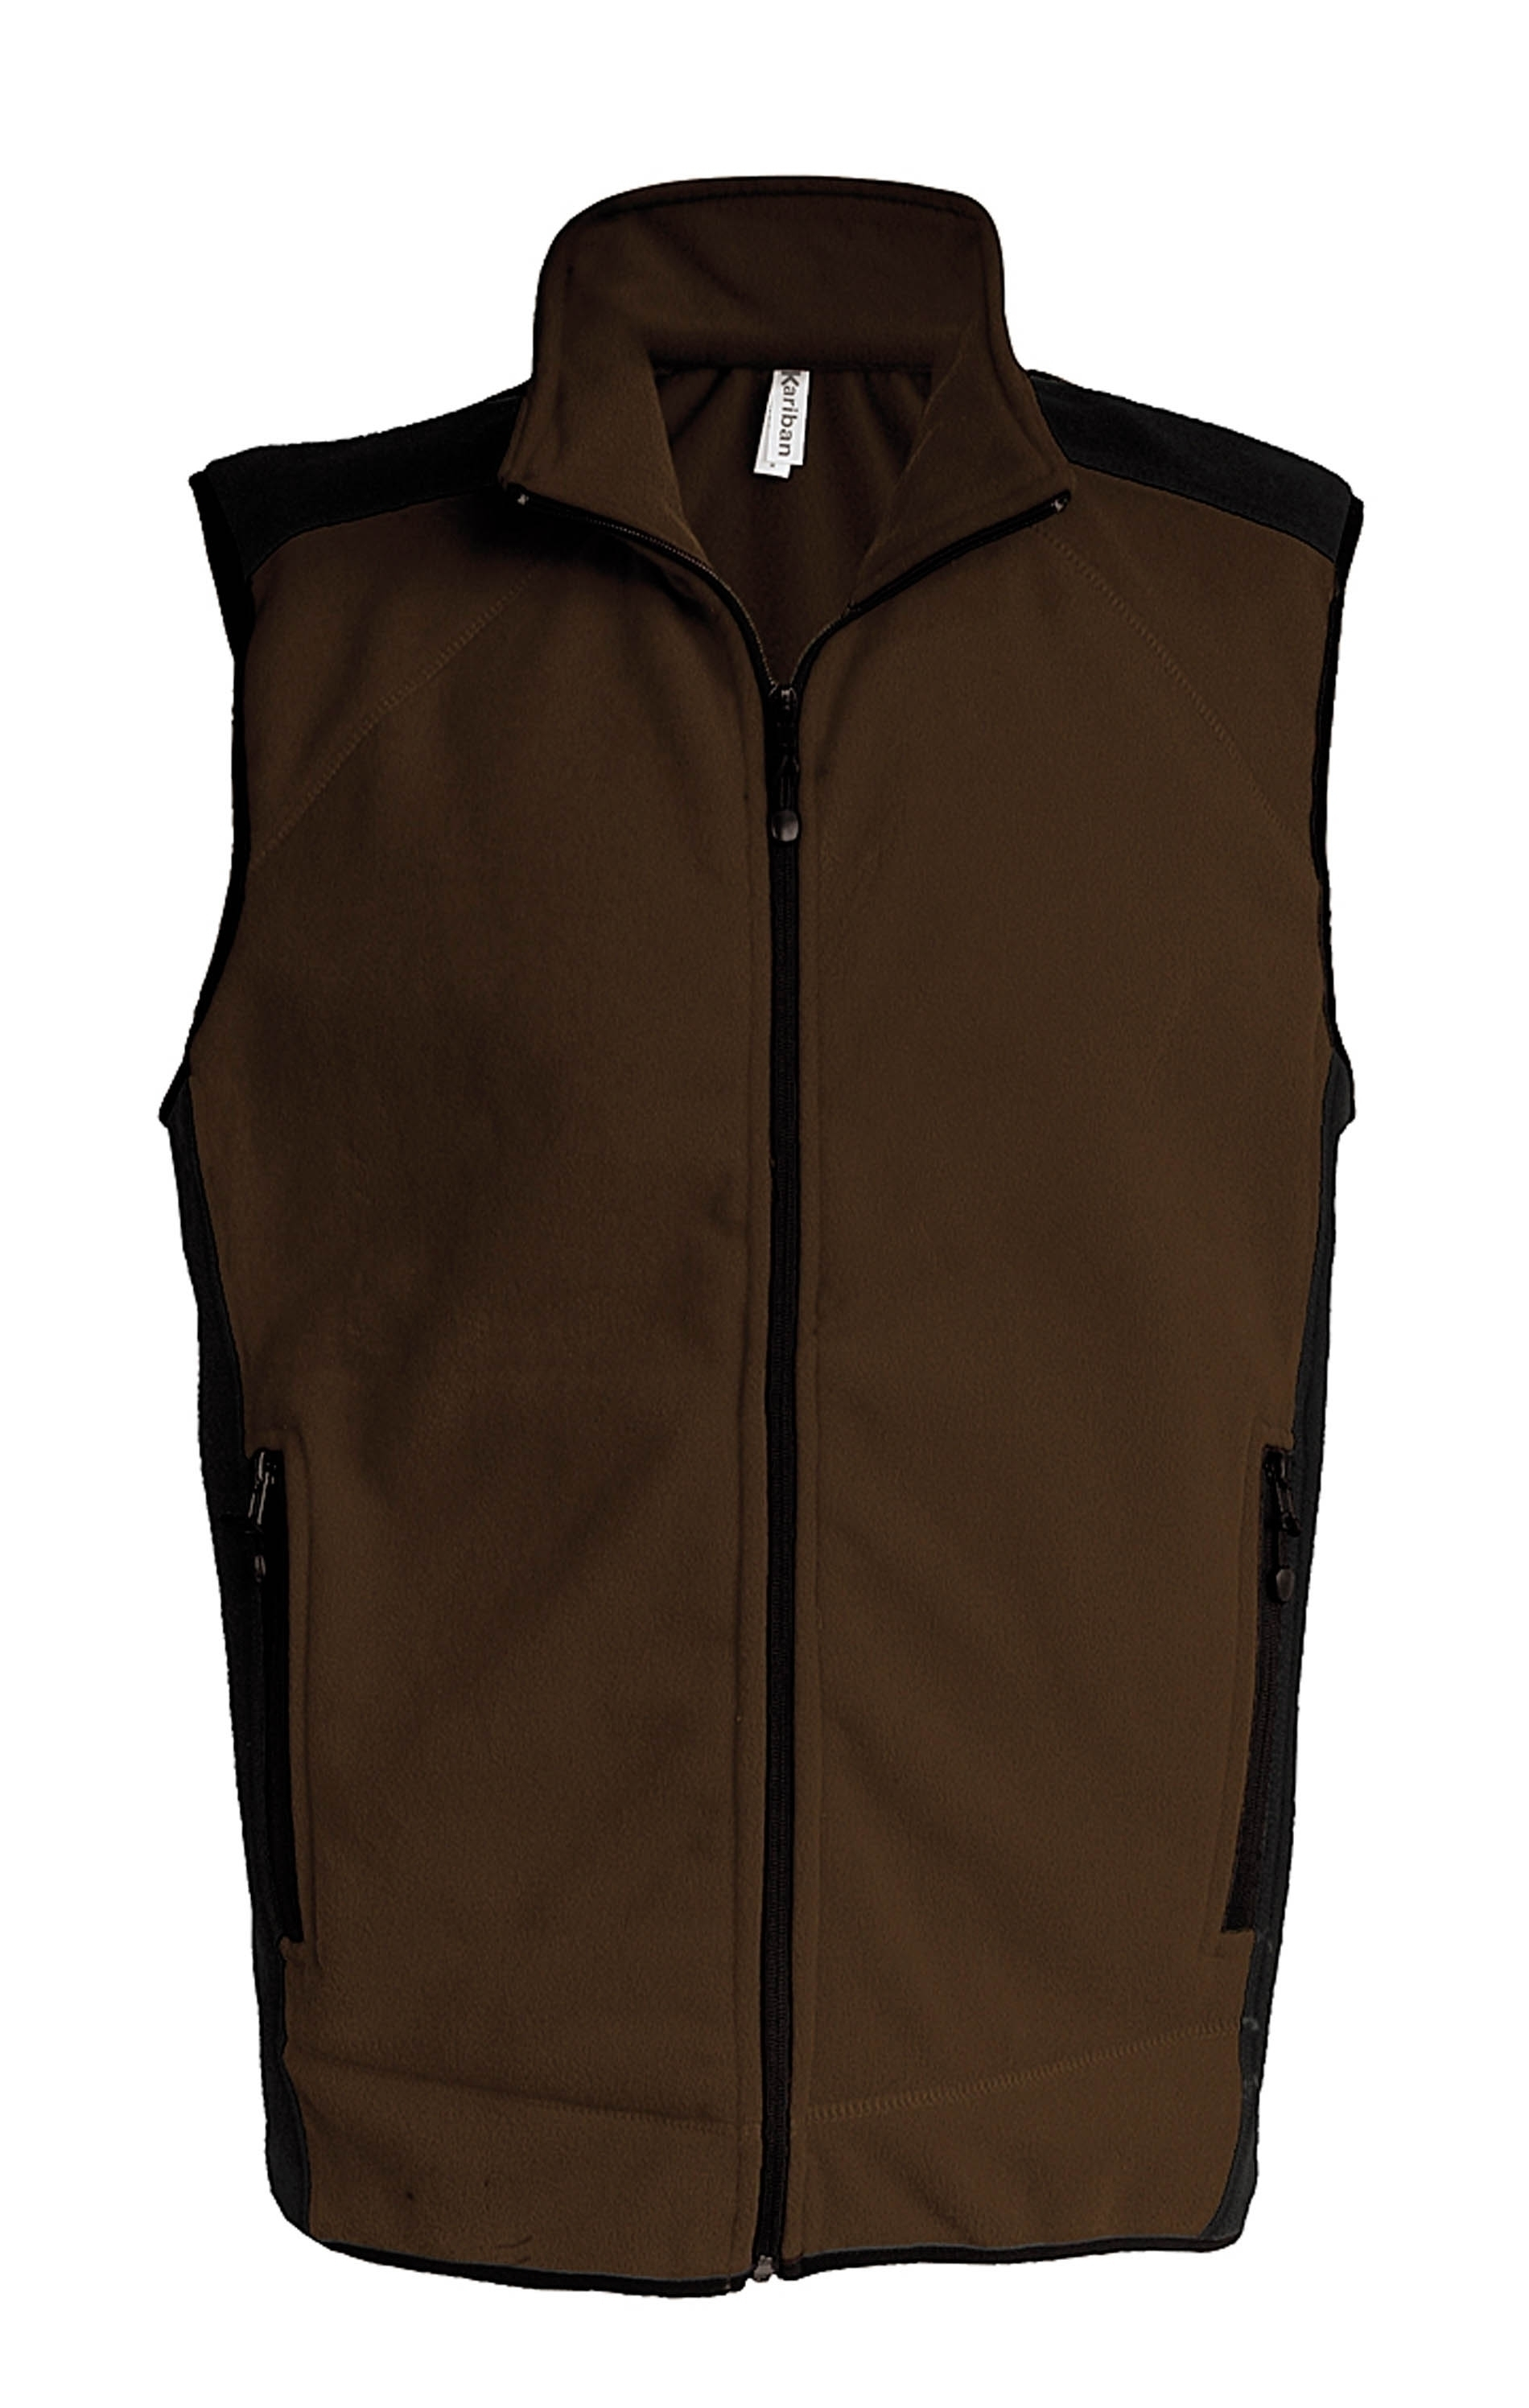 DIVO_ Gilet micropolaire bicolore Chocolate / Black Marron